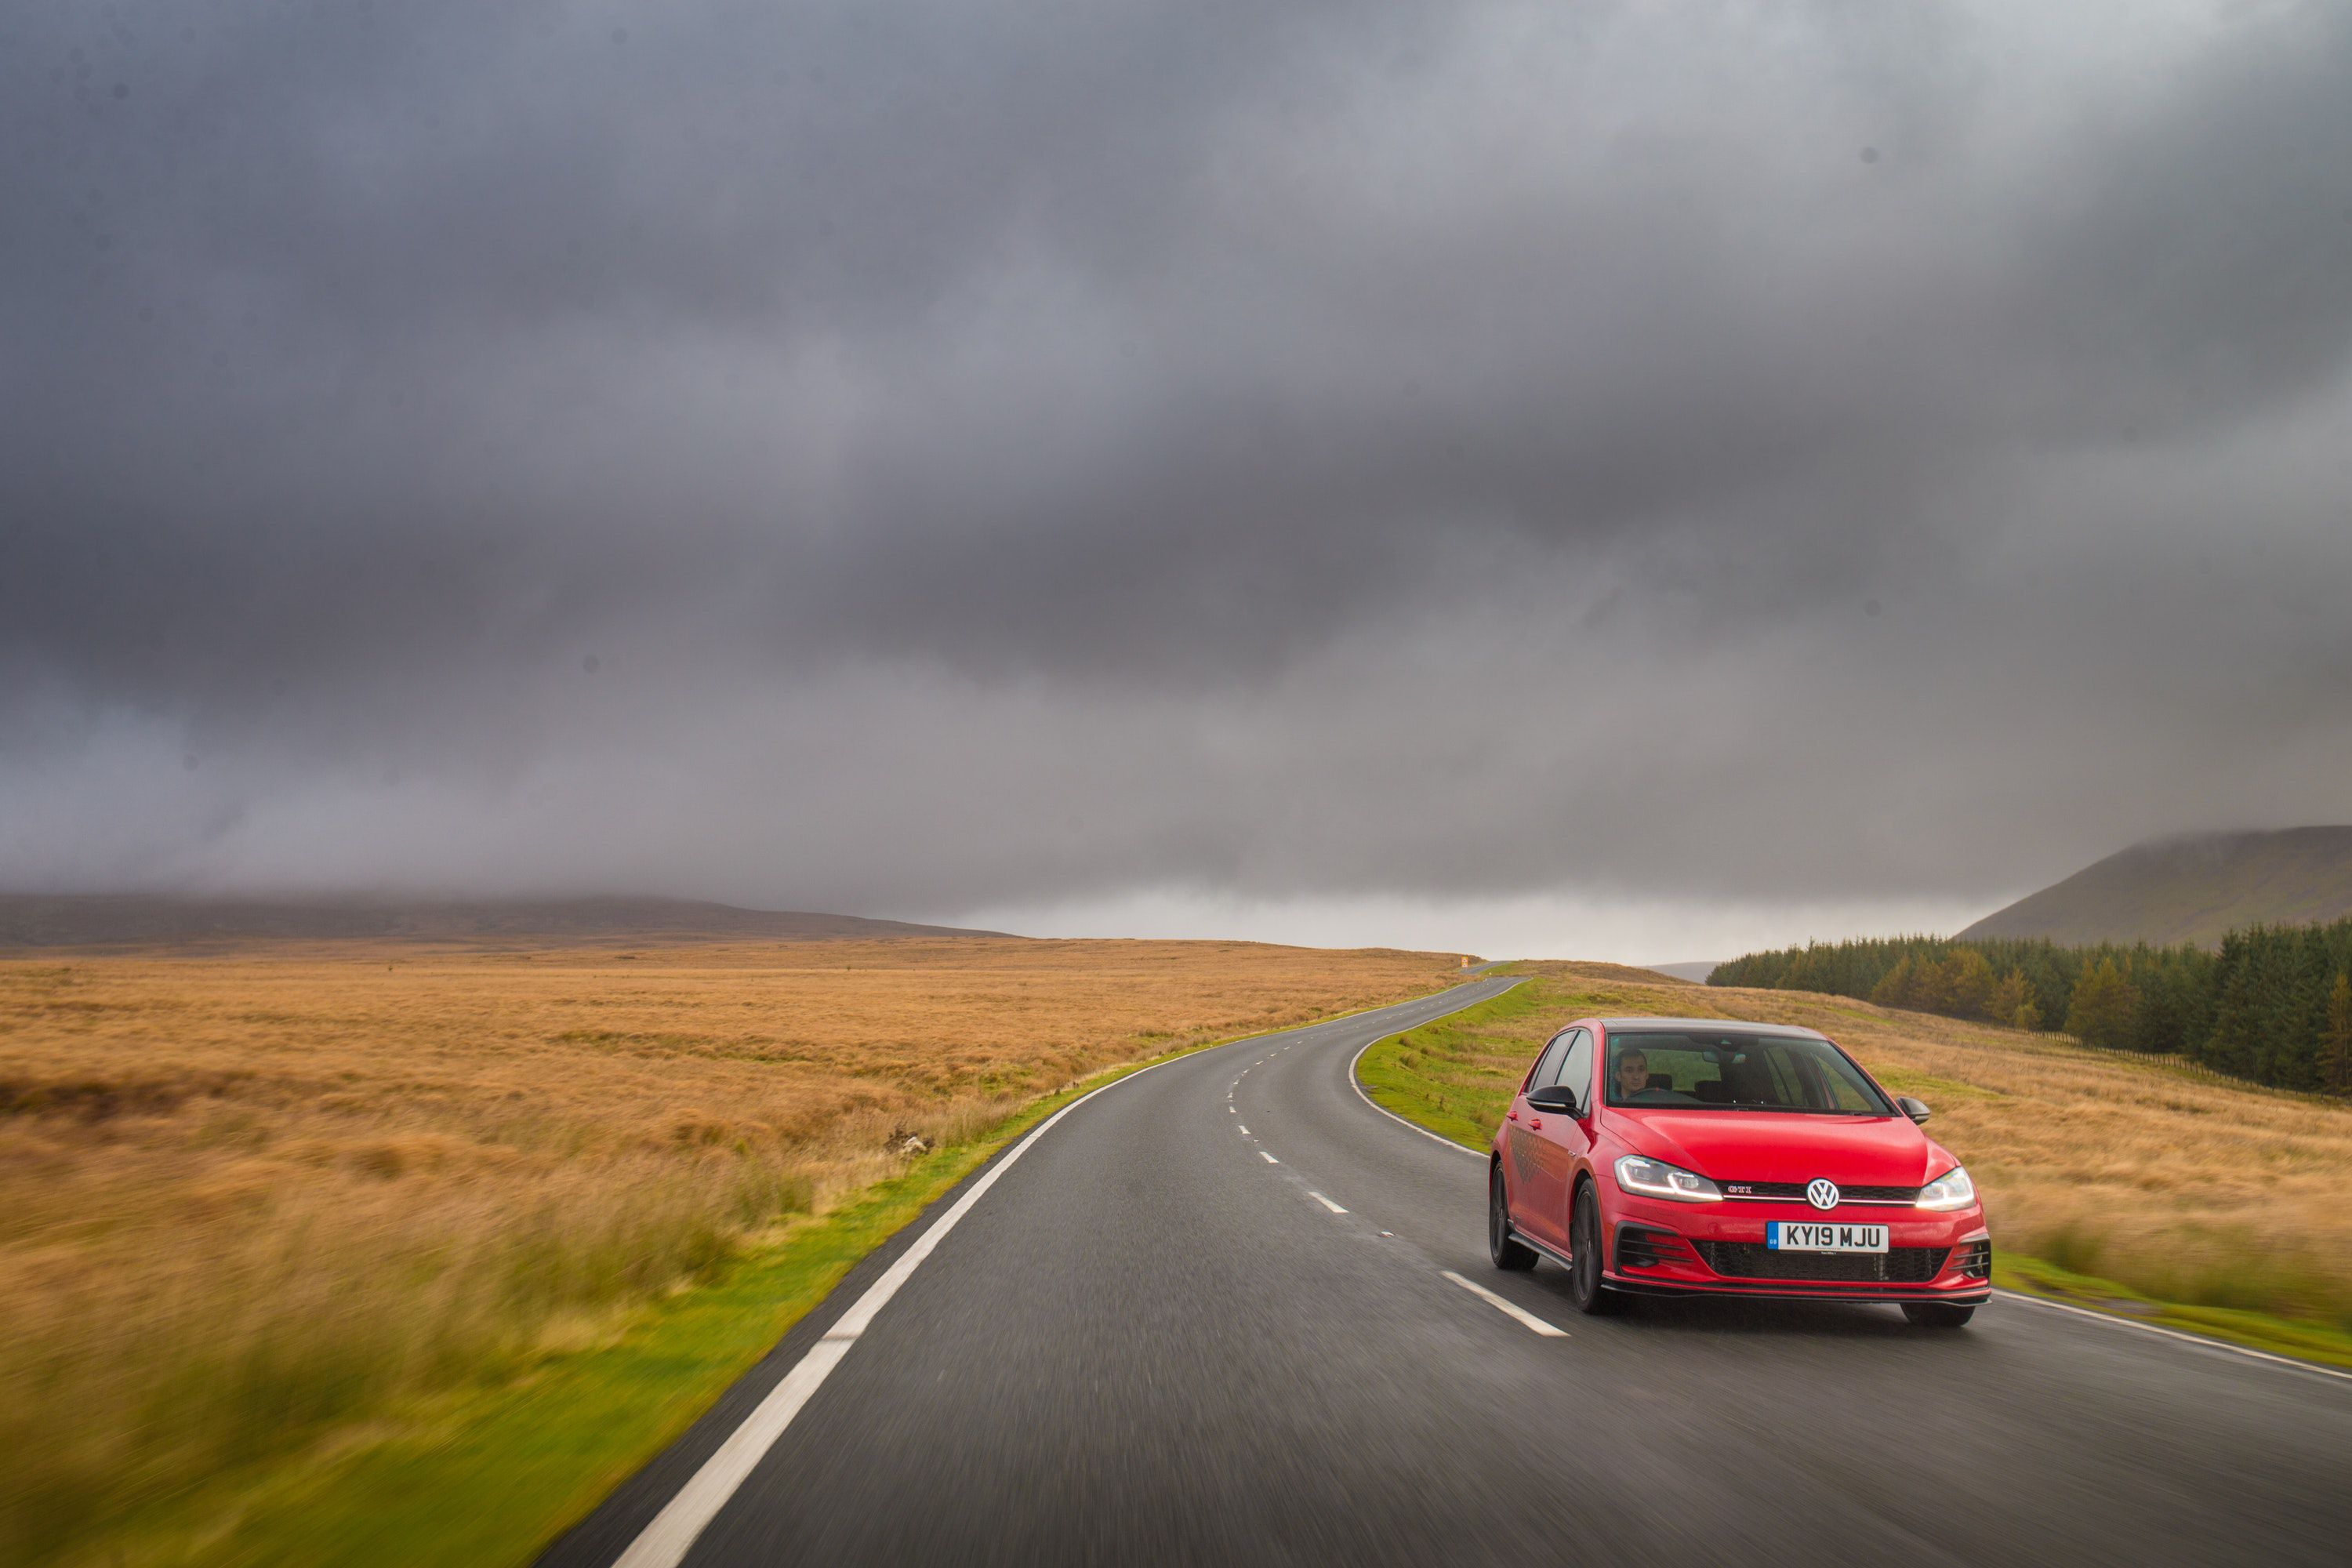 Red golf driving on dry roads